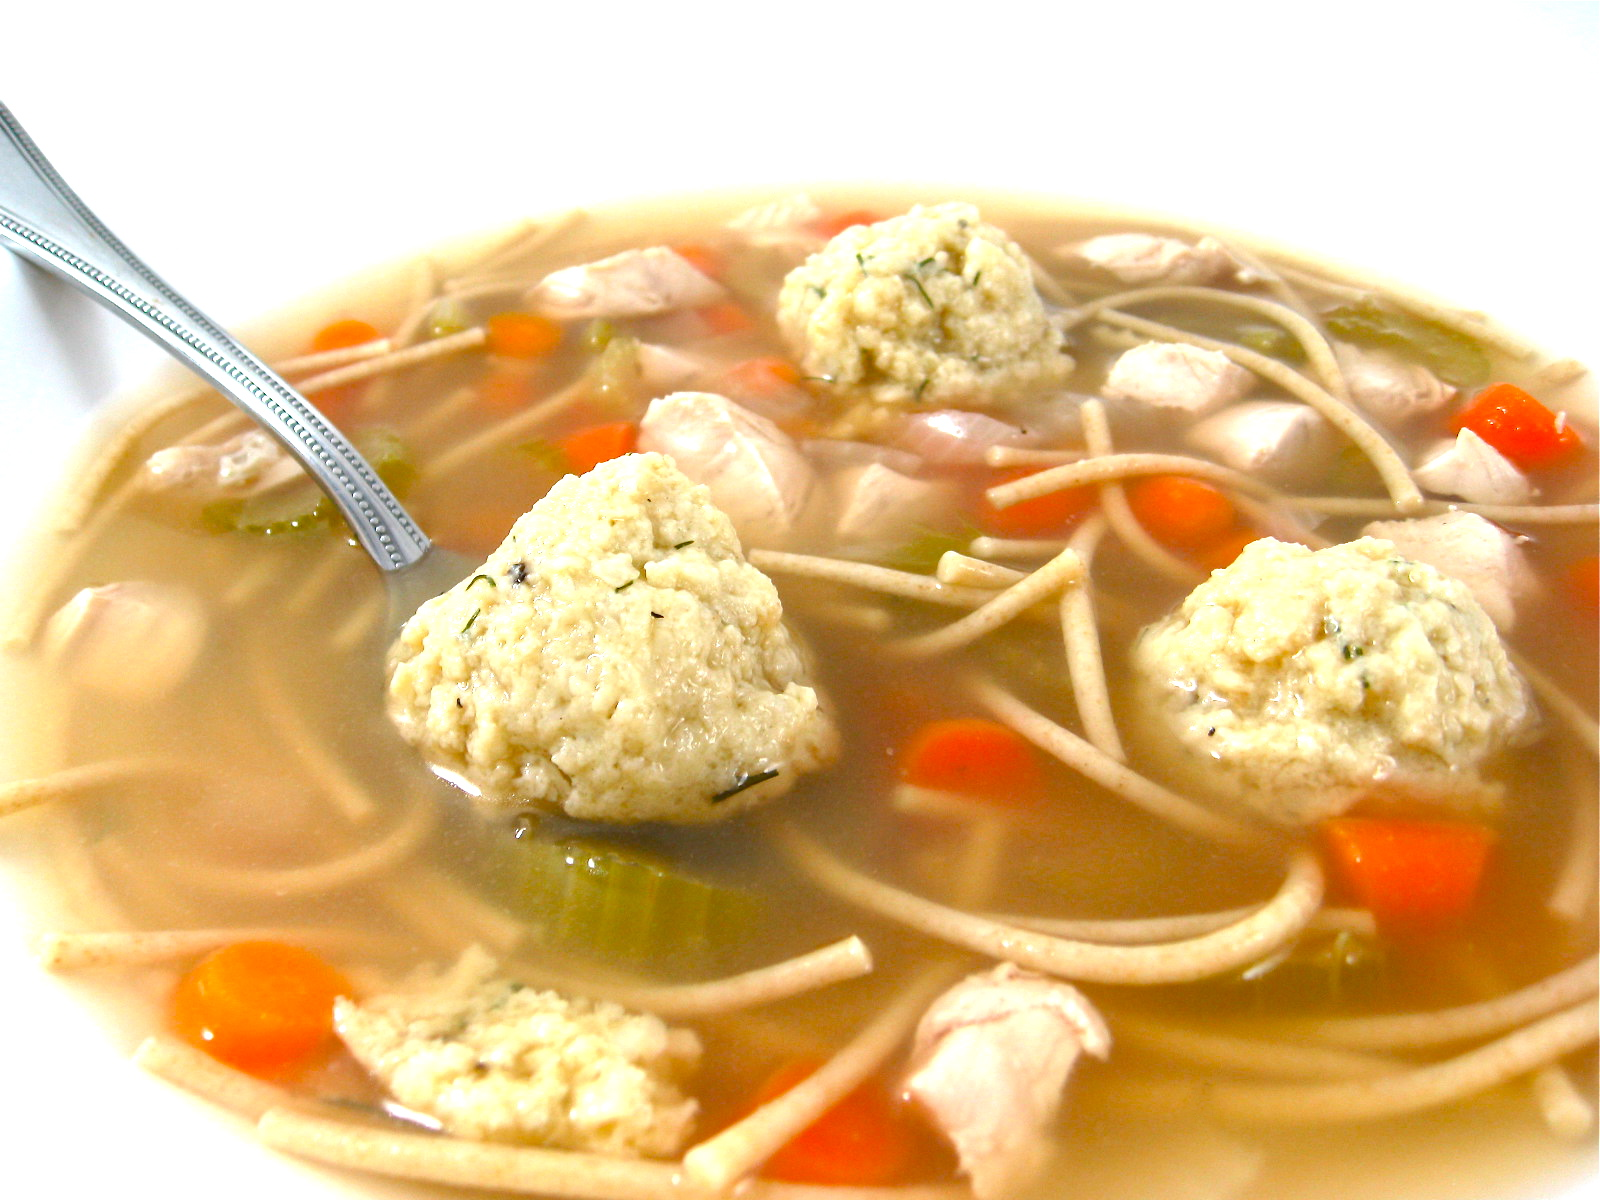 Skinny Matzo Ball Soup with Weight Watchers Points | Skinny Kitchen